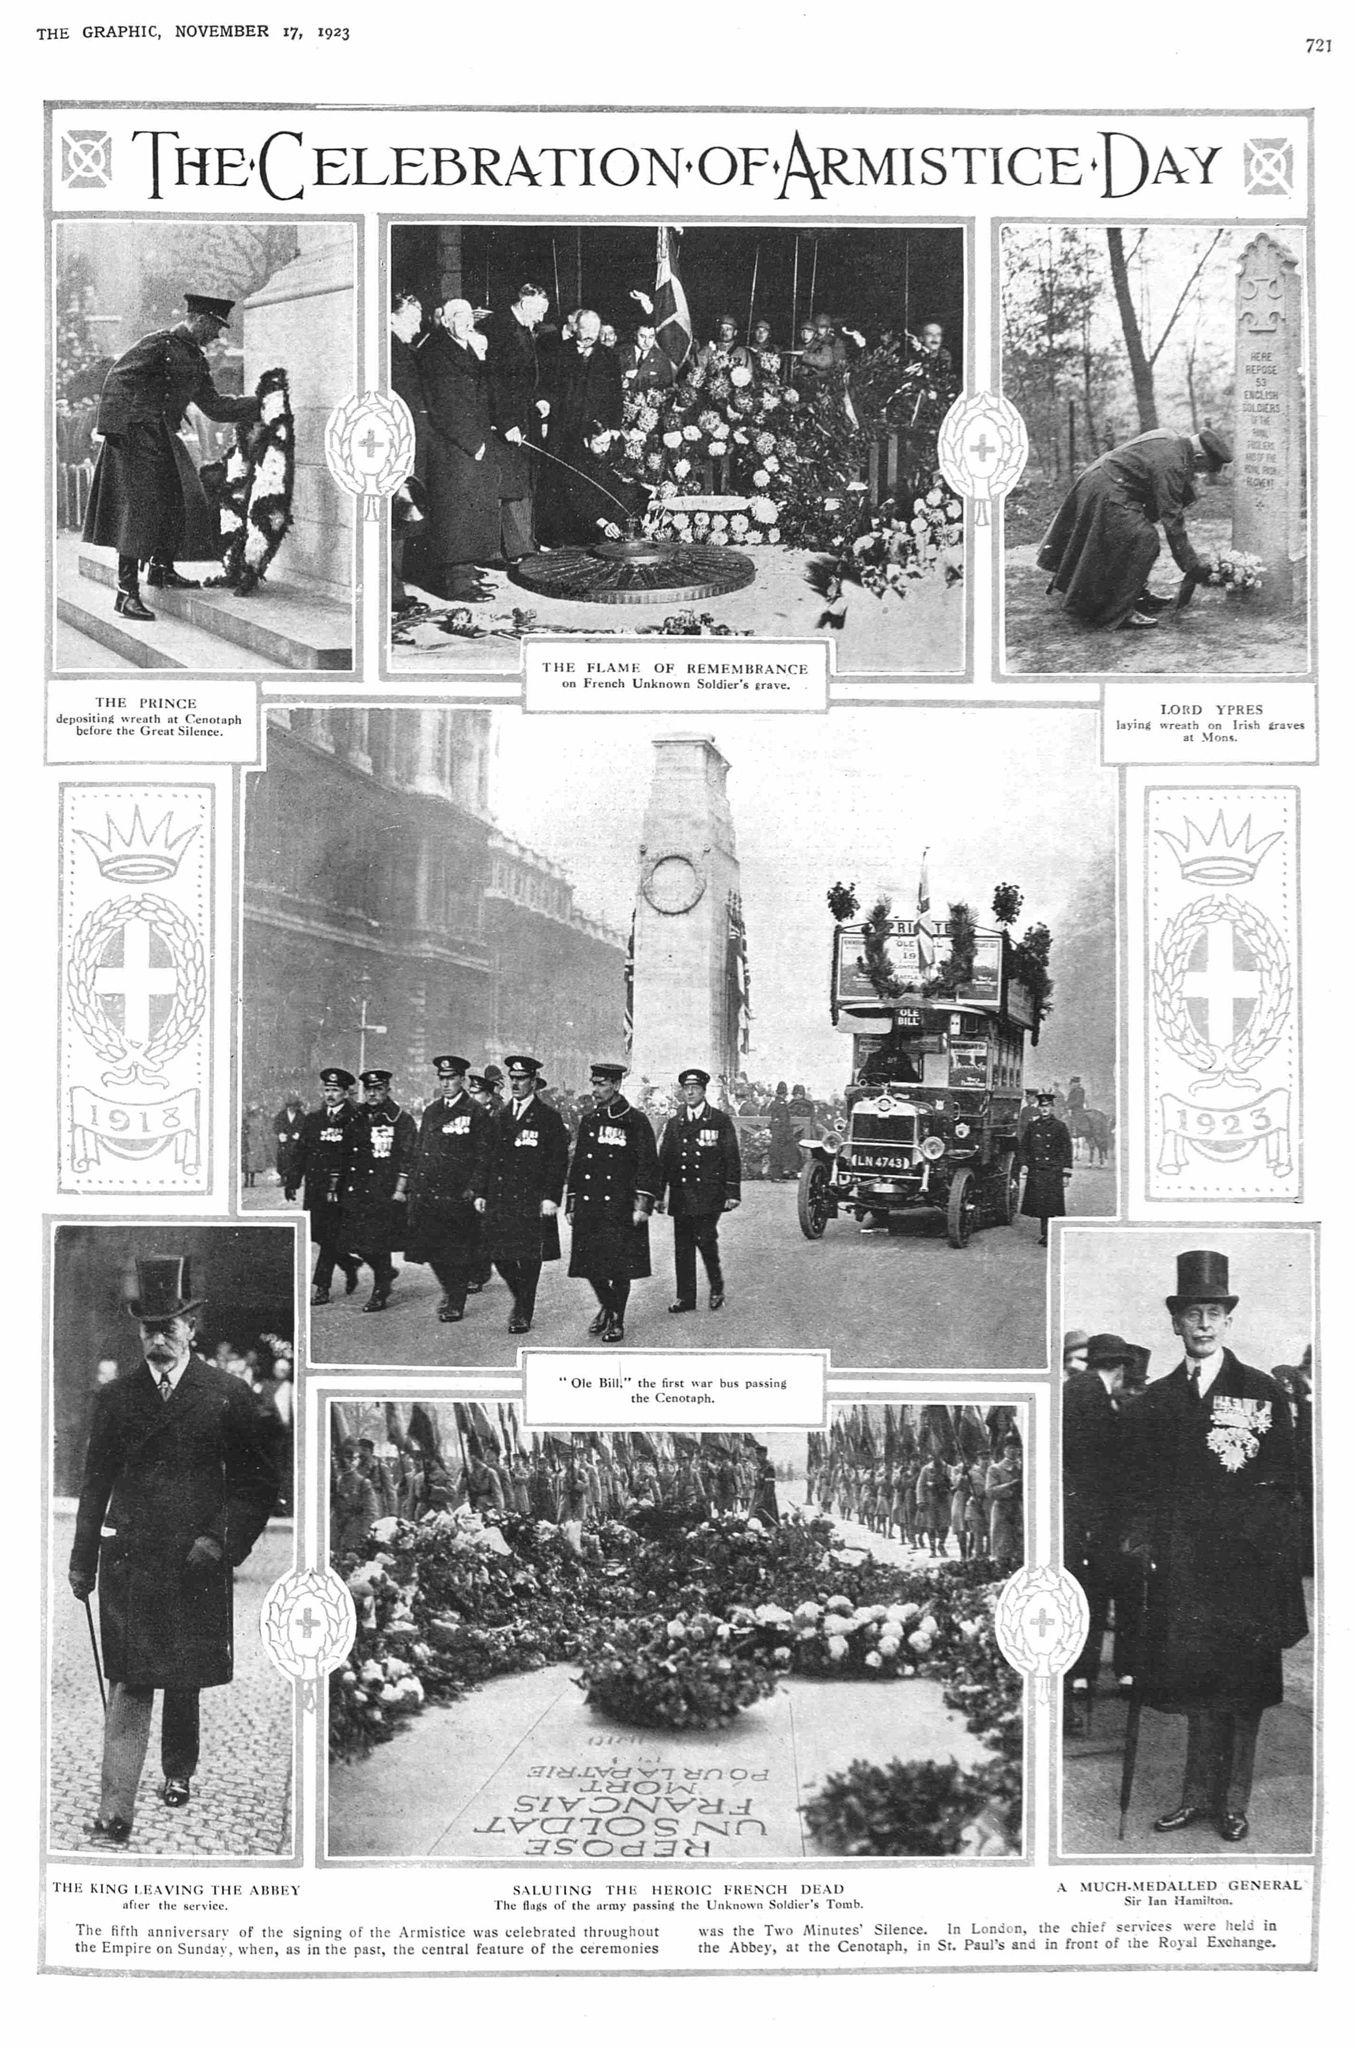 Armistice 1923, Parliament Street, City of Westminster. Source: The Graphic Newspaper Source pp. 721